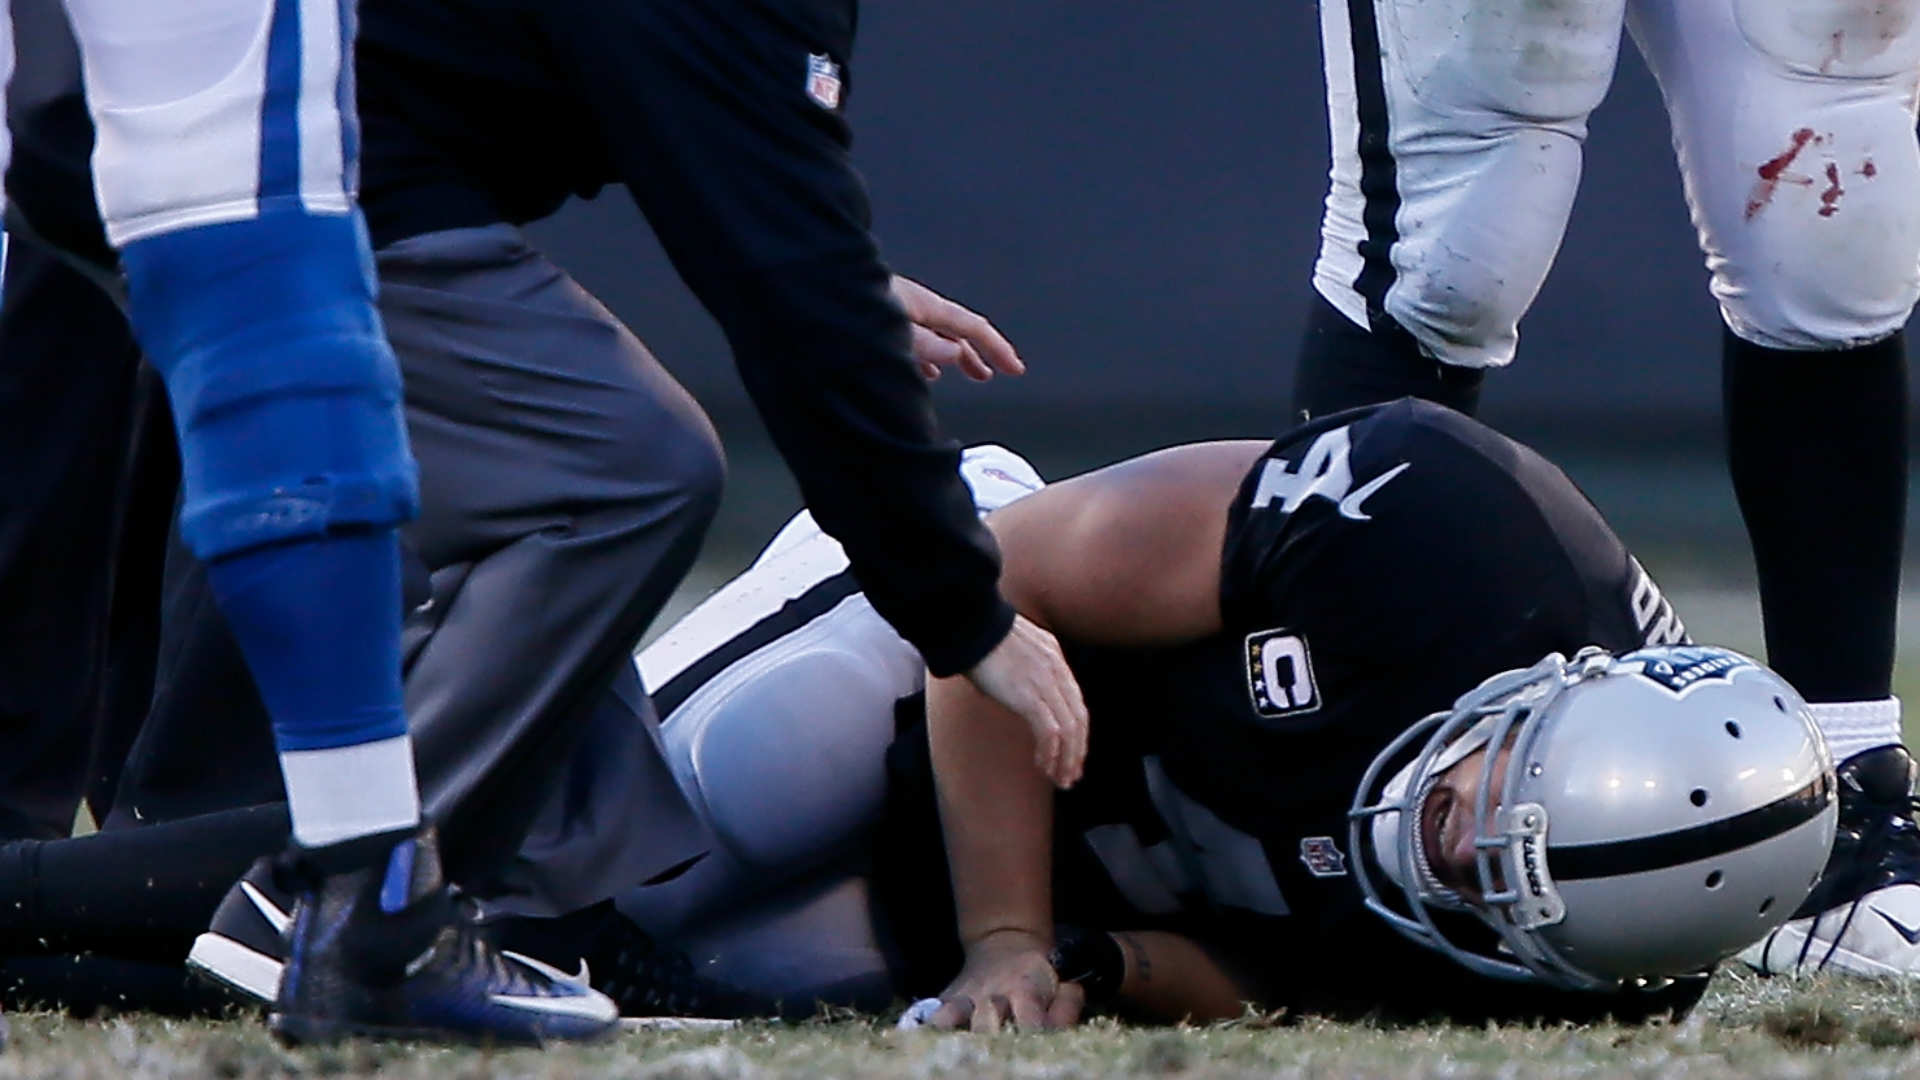 Derek Carr carted off, appears to mouth 'it's broke' grabbing right leg